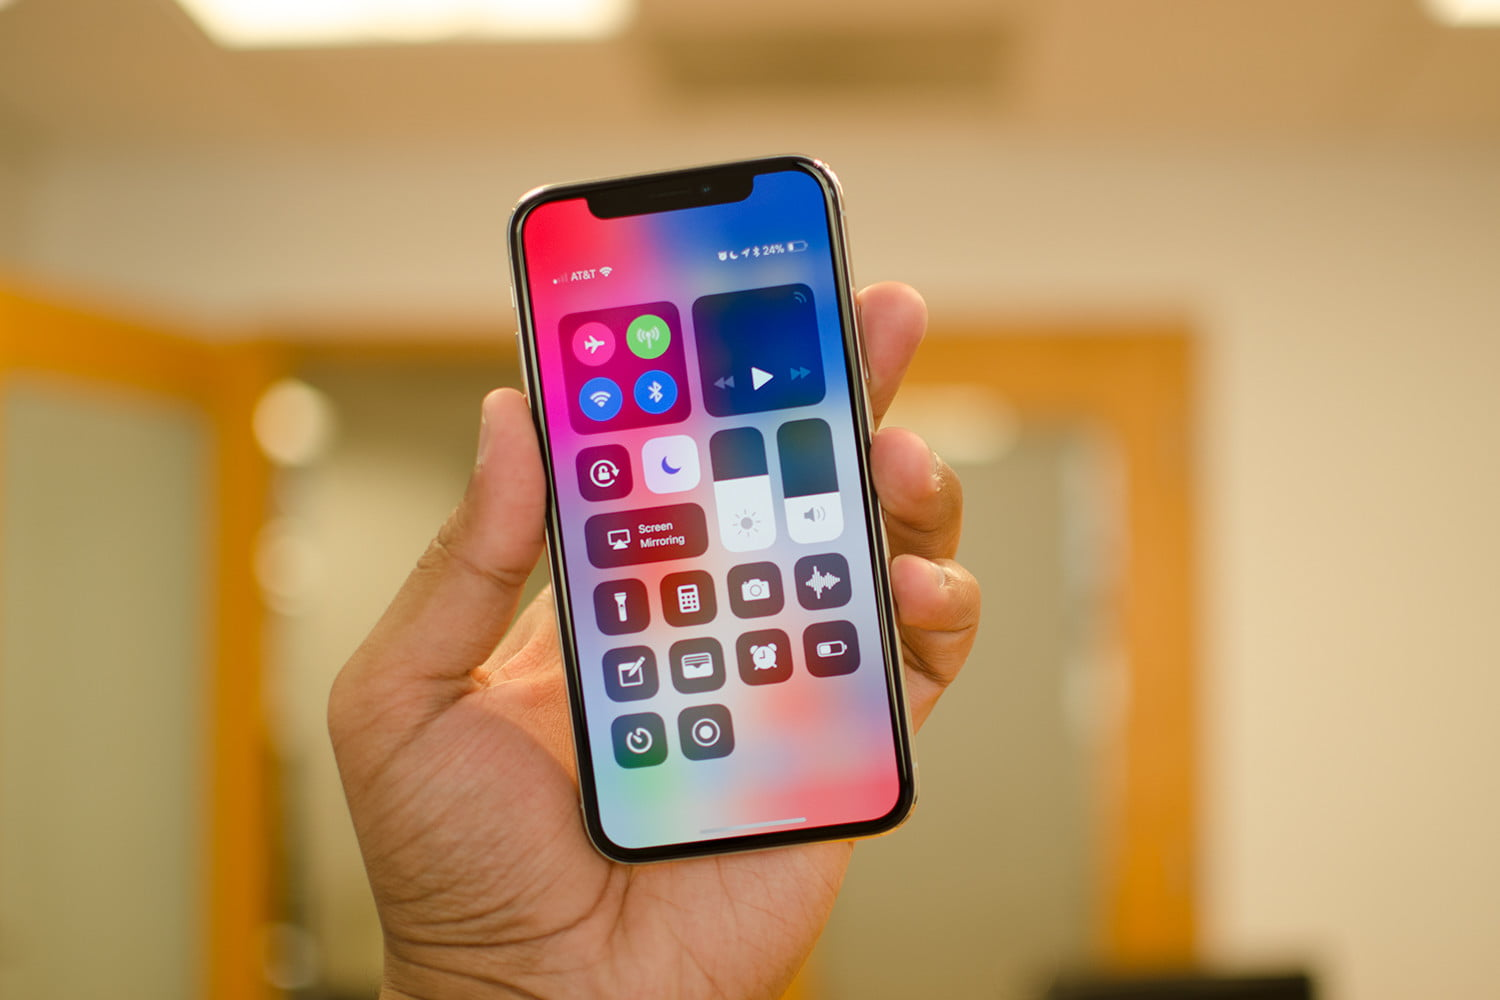 5 Ways to Hack An iPhone (Even Experts Don't Know)